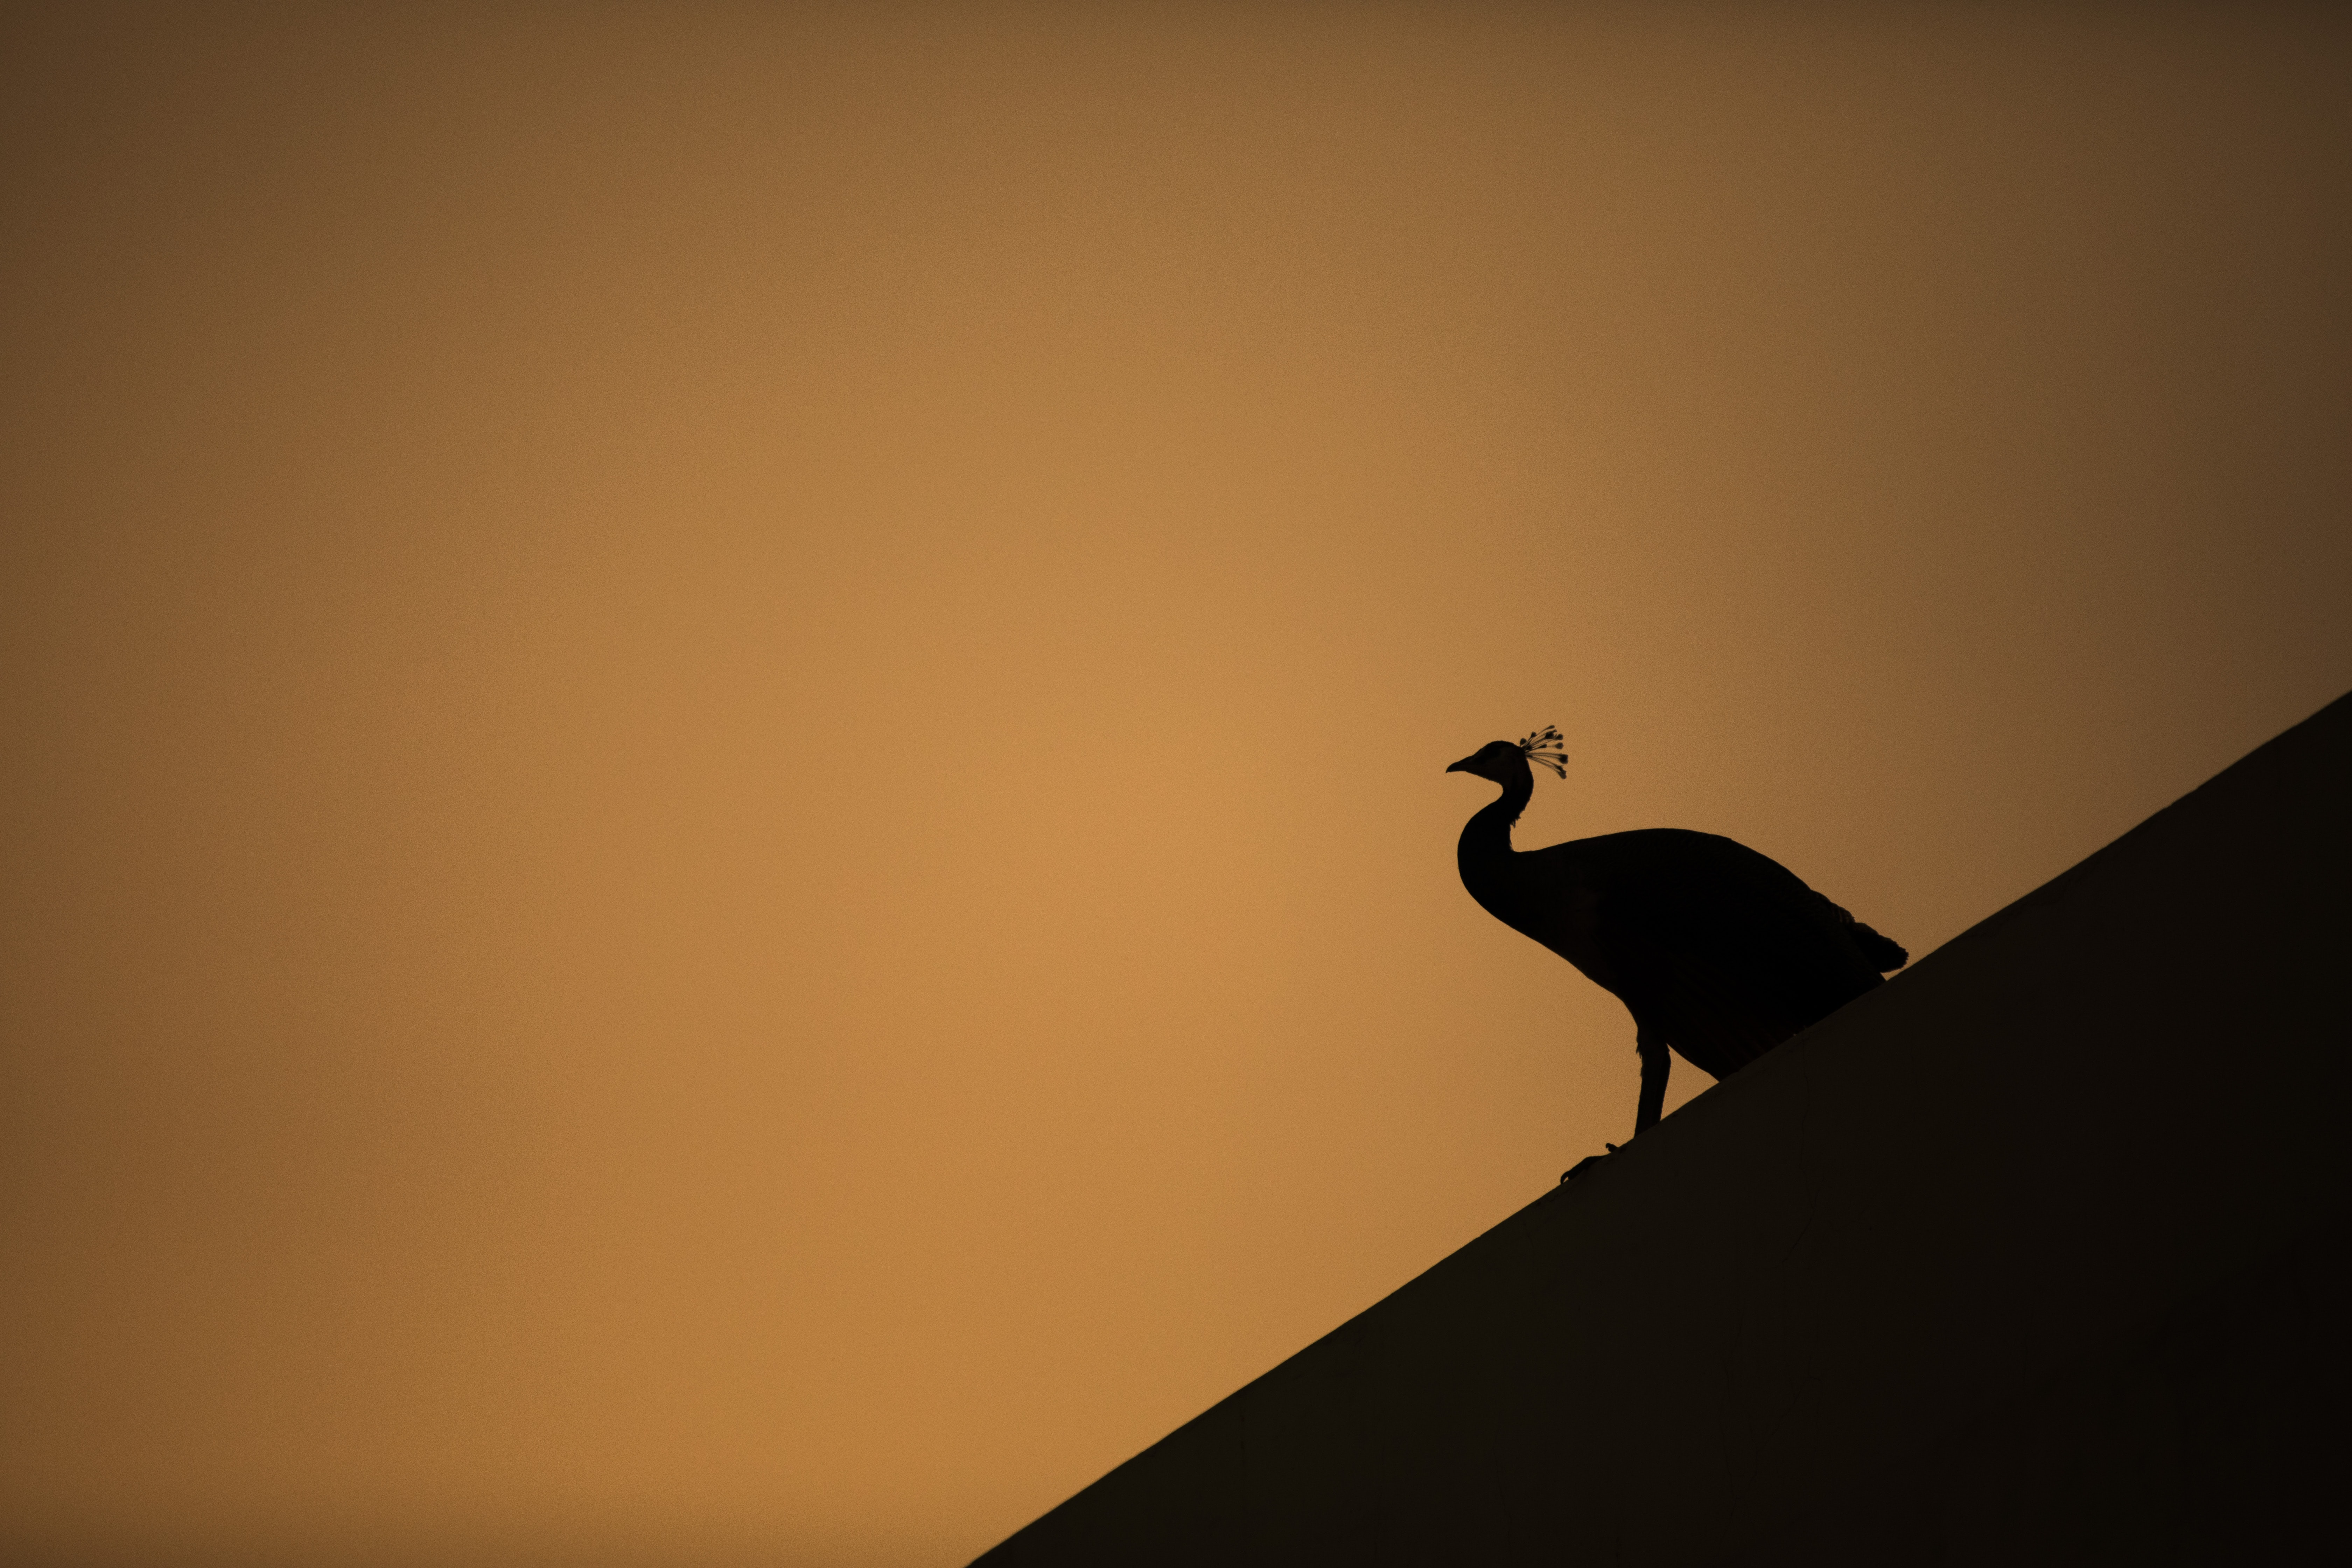 silhouette of peacock